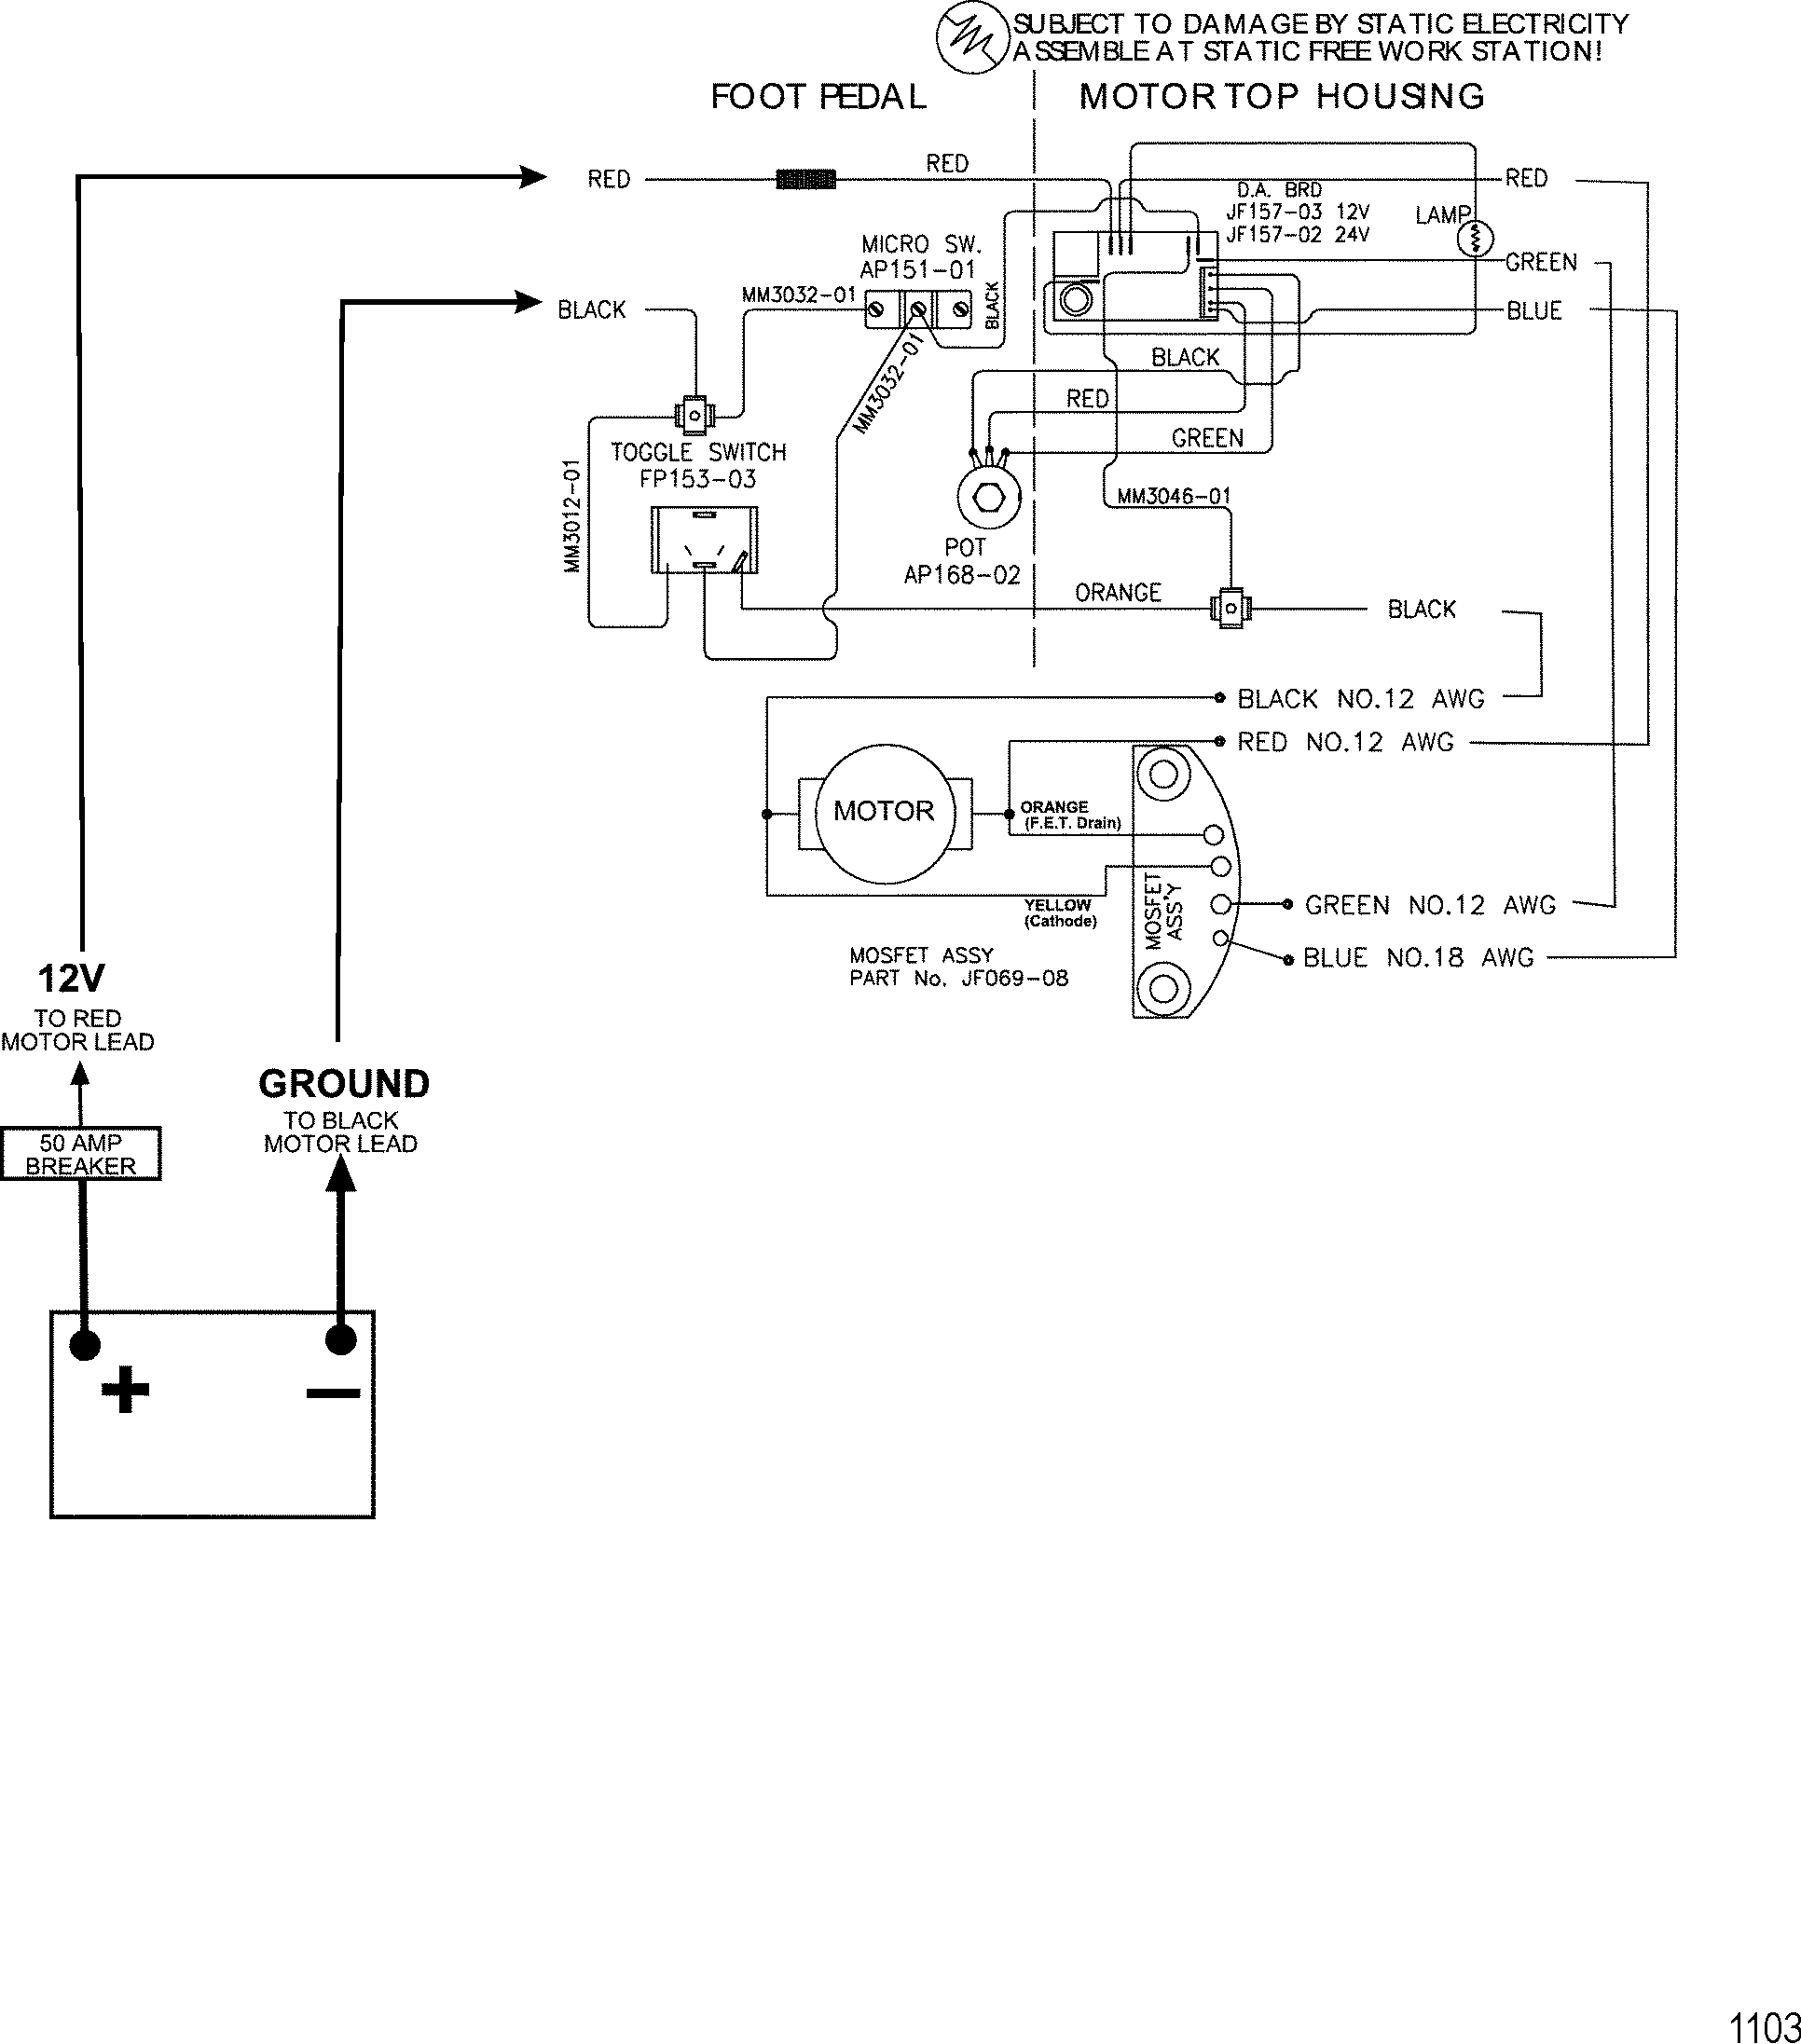 hight resolution of 765 motorguide wiring diagram images gallery